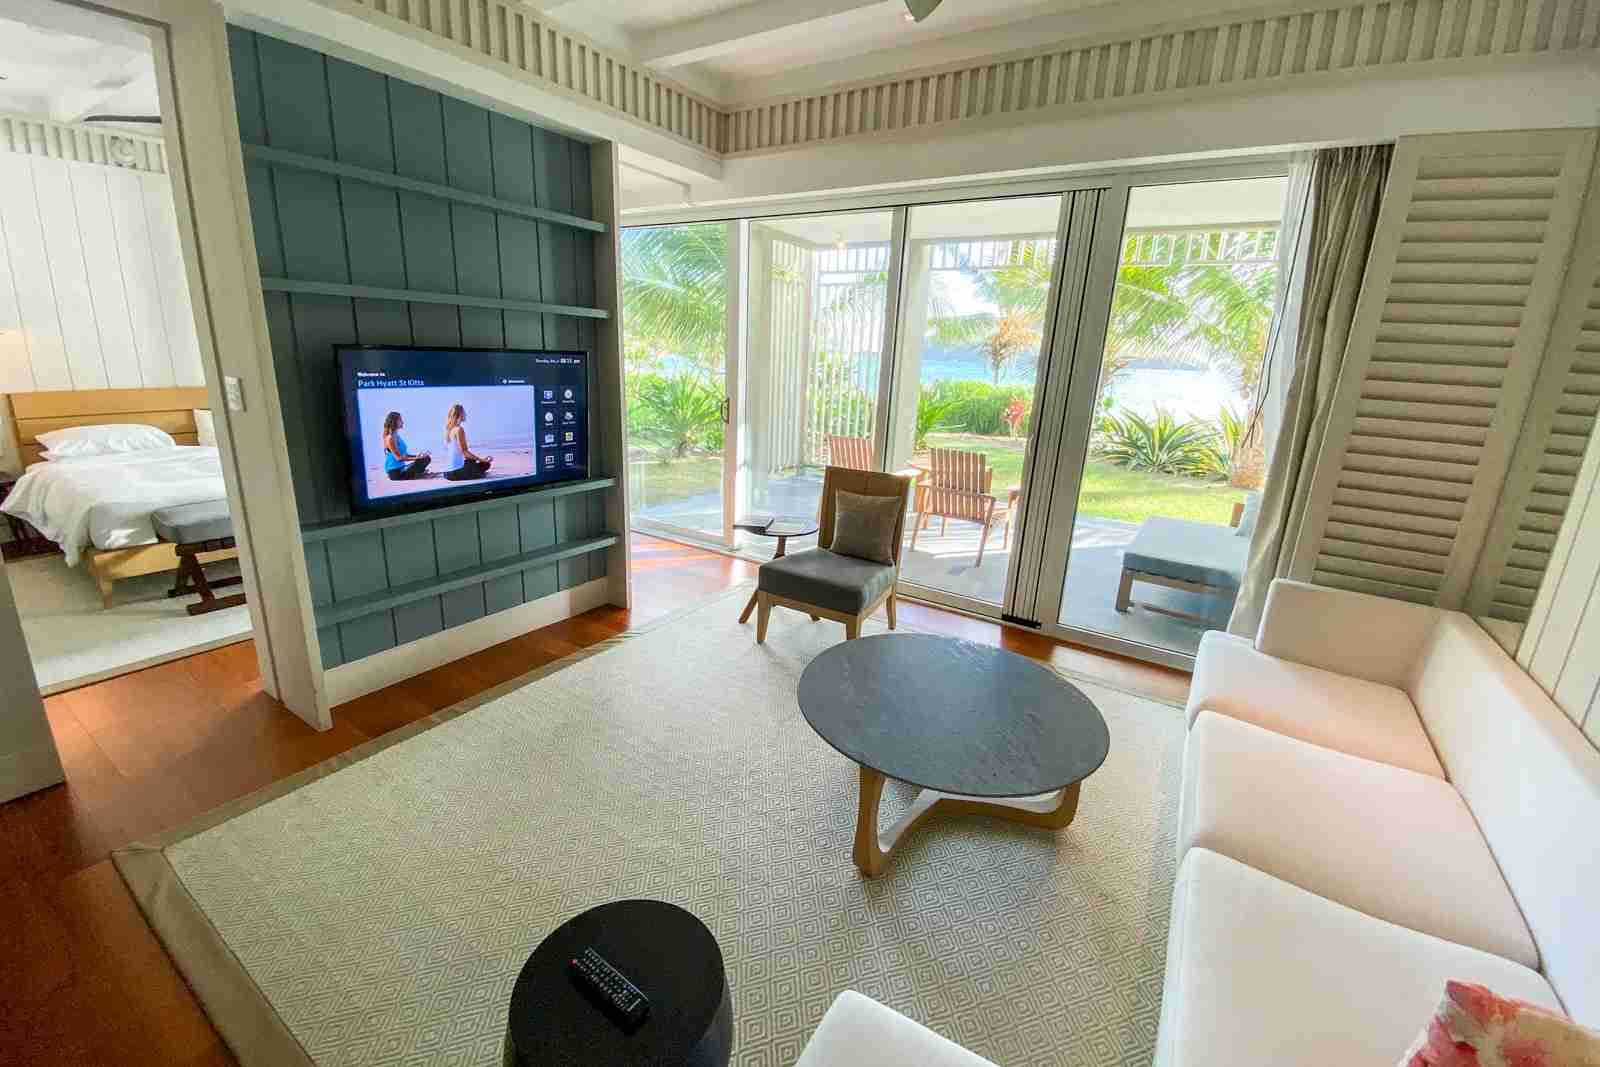 Living room area at Park Hyatt St. Kitts (Photo by Zach Griff/The Points Guy)